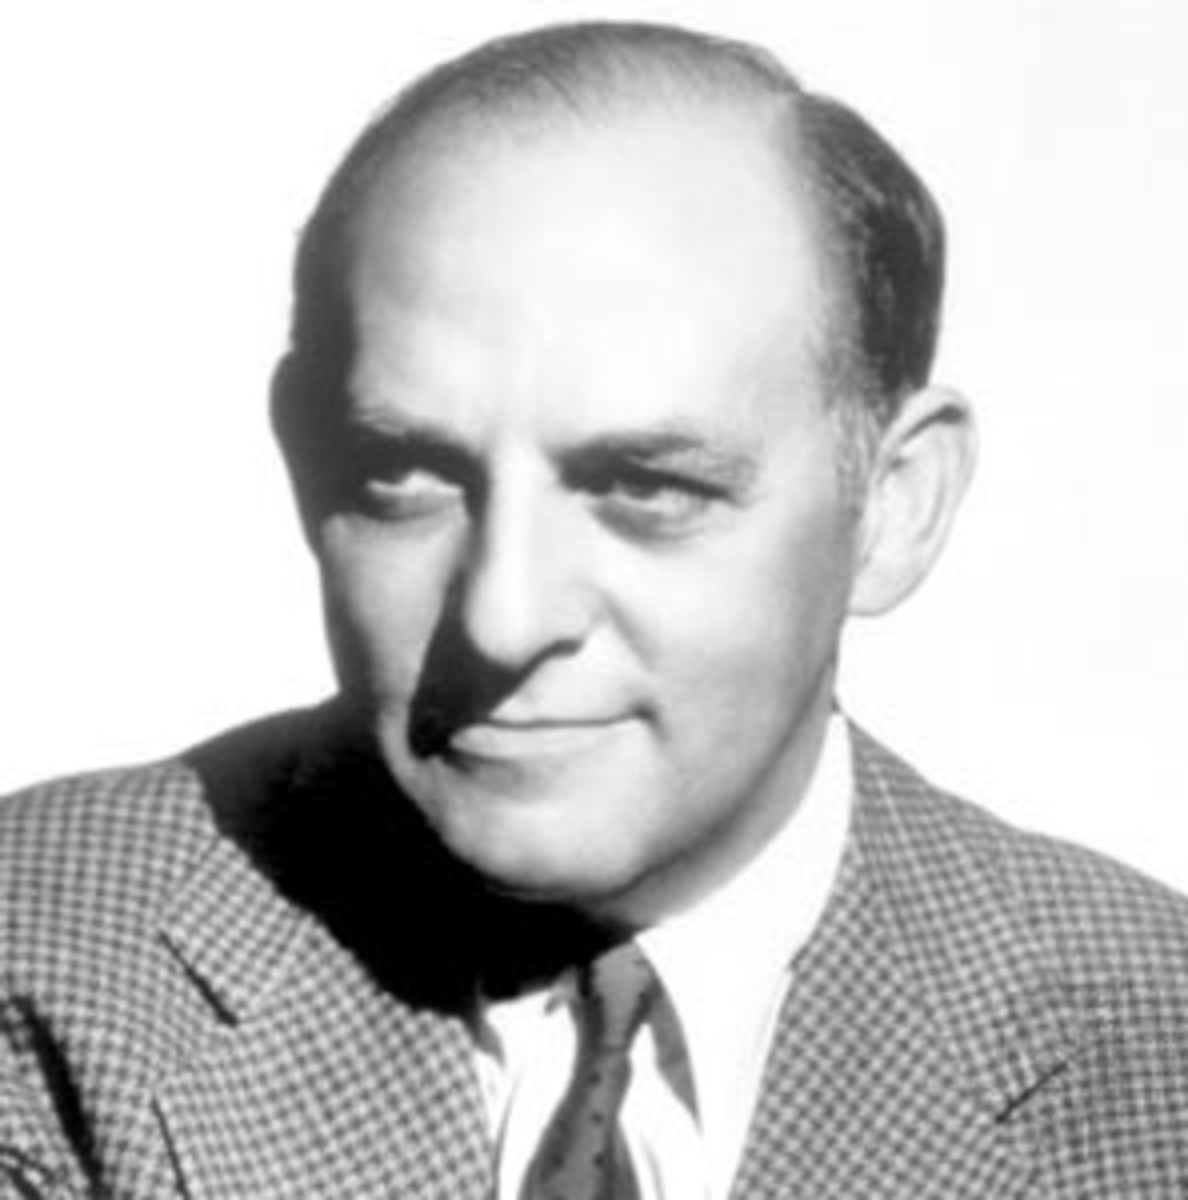 Harry Cohn, Hollywood's Hated Dictator